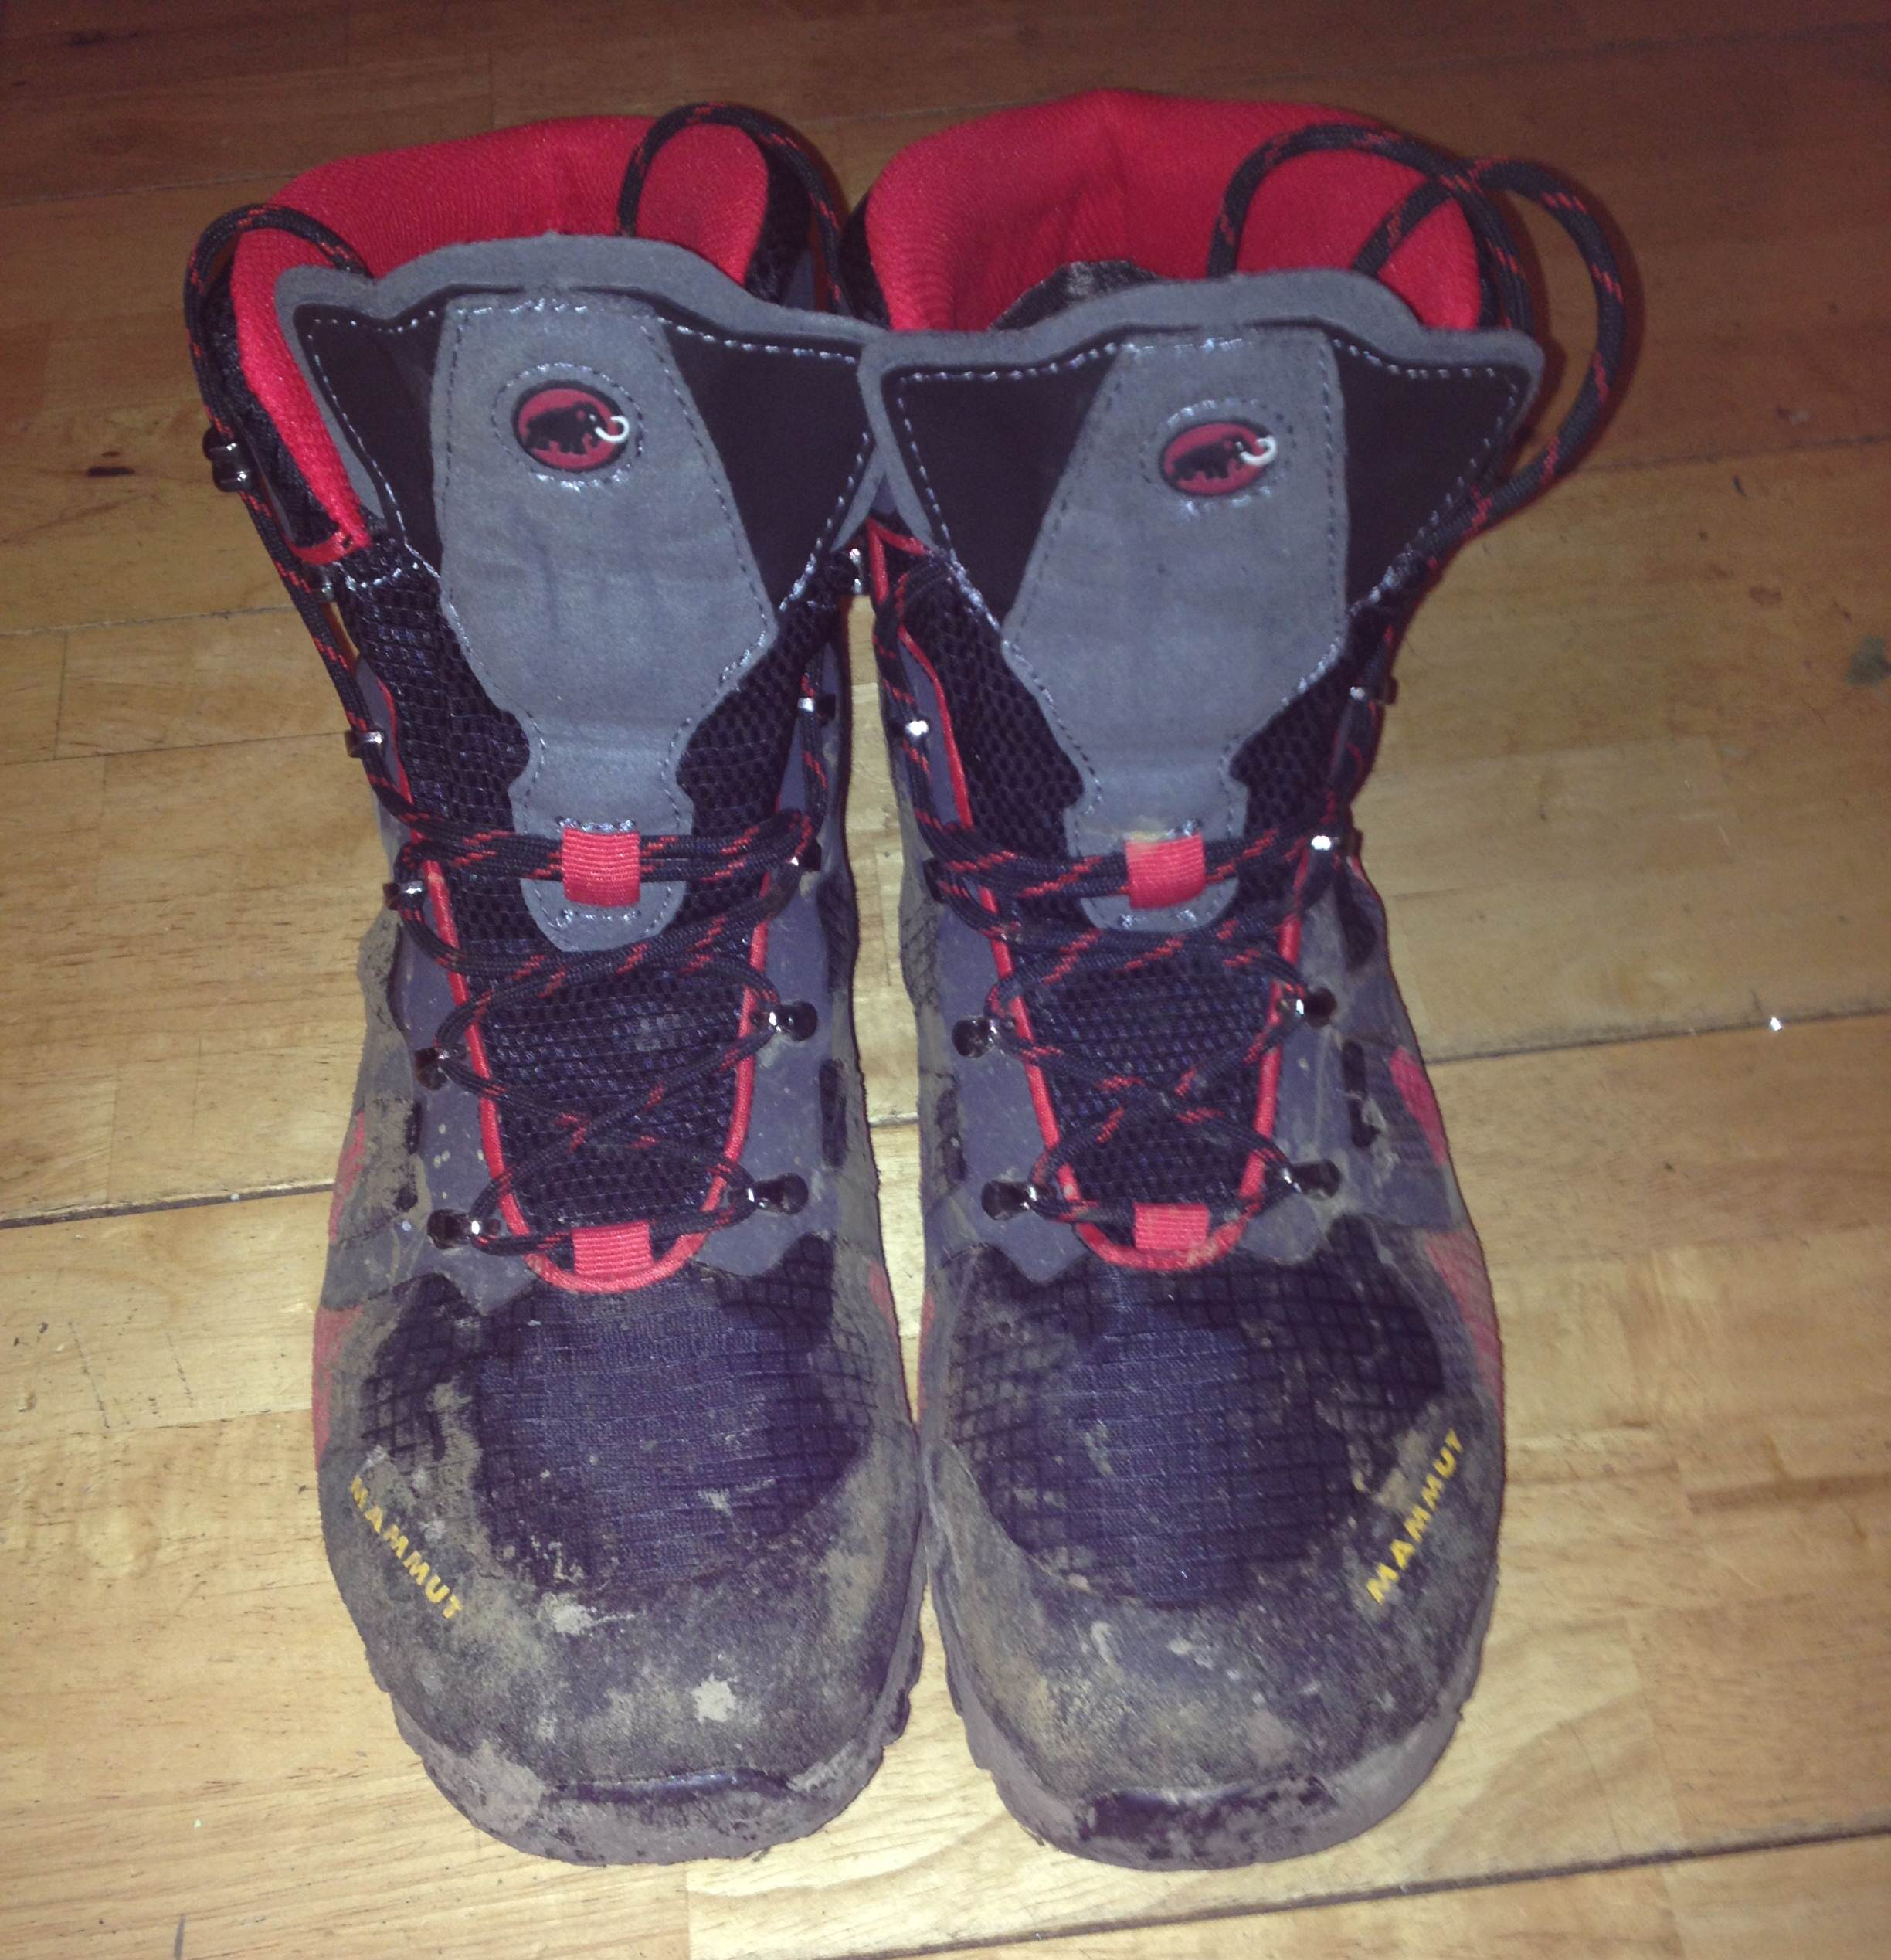 Having worn these for a few weeks of activities the Mammut Comfort High GTX Surround boots have proved themselves to be a tough, very waterproof and